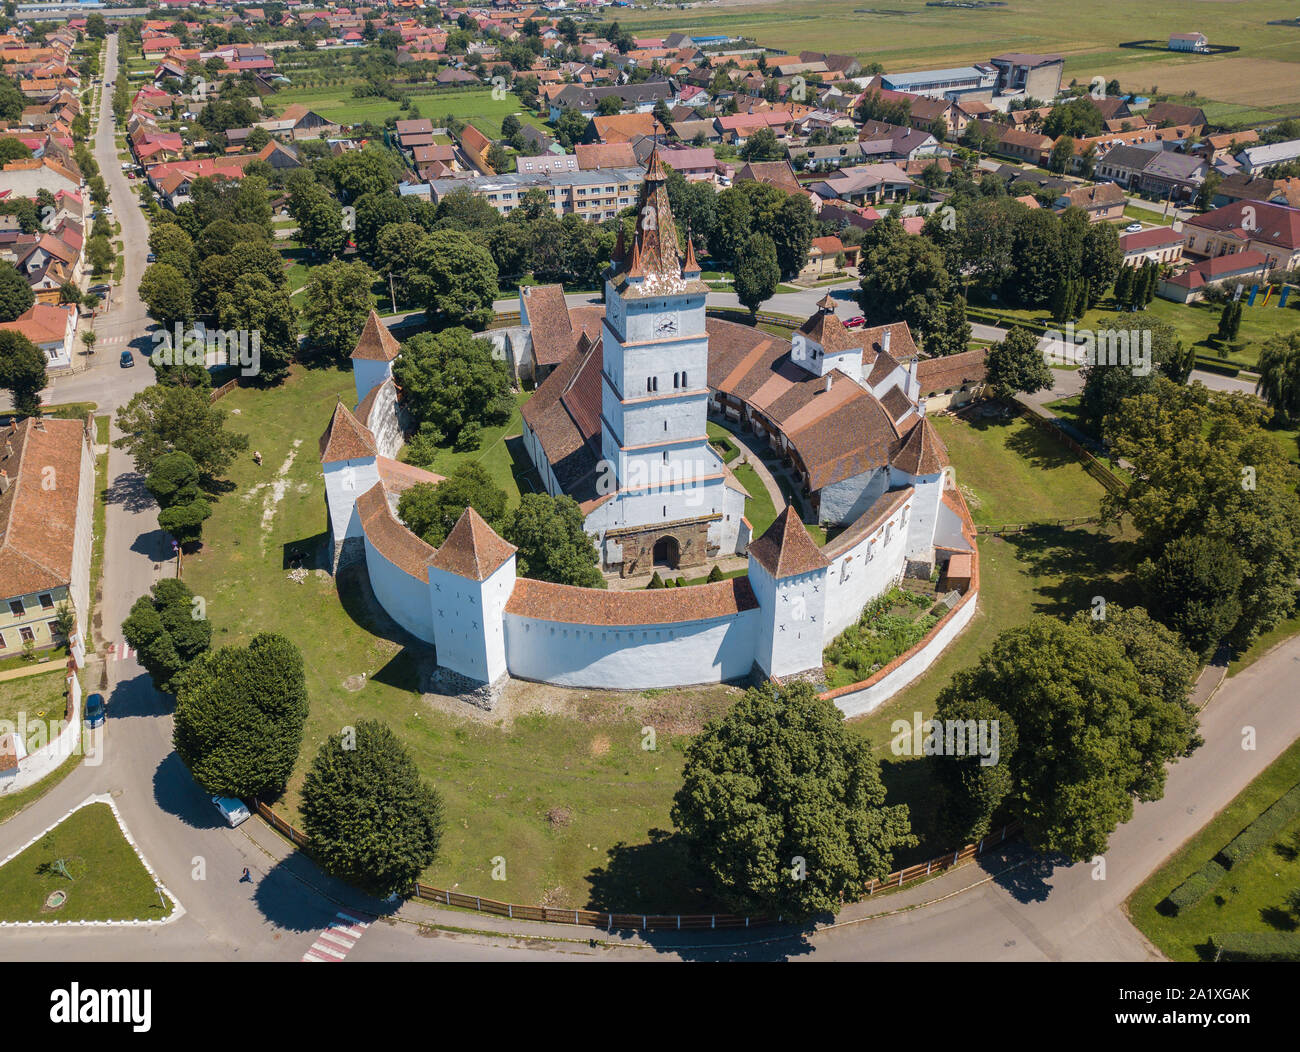 Aerial view of fortified church surrounded powerful thick walls in Transylvania overlooking the village in a beautiful summer day. Romania Stock Photo